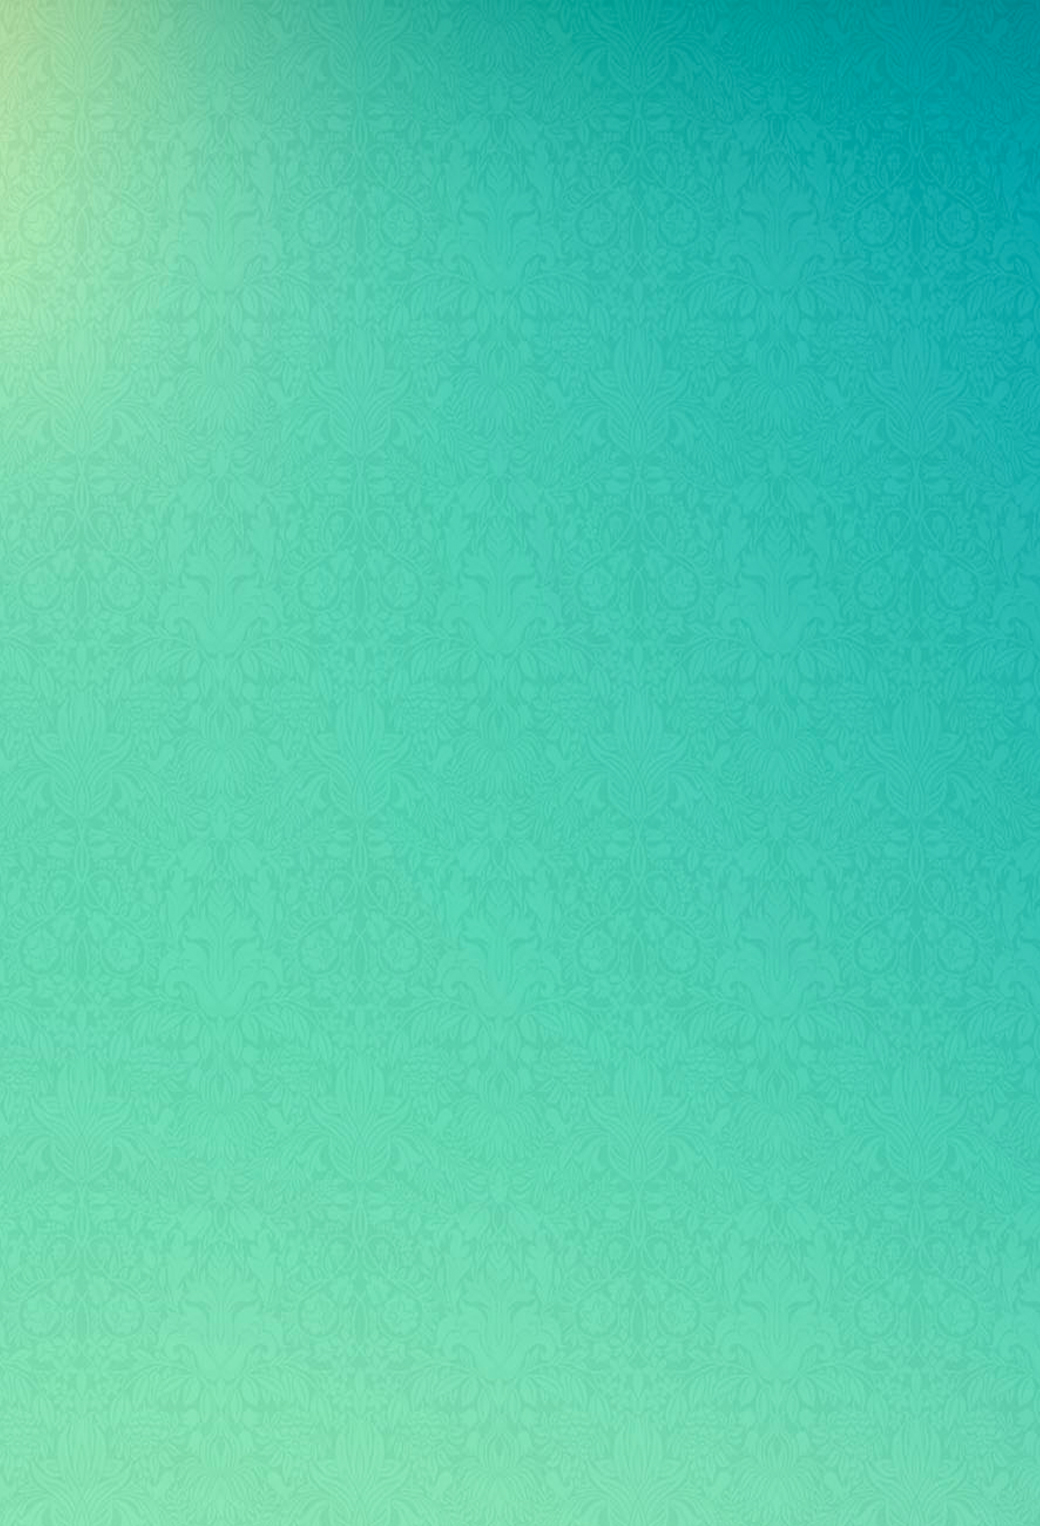 iOS 7 Wallpaper Parallax 12 wallpapers55com   Best Wallpapers for 1040x1526